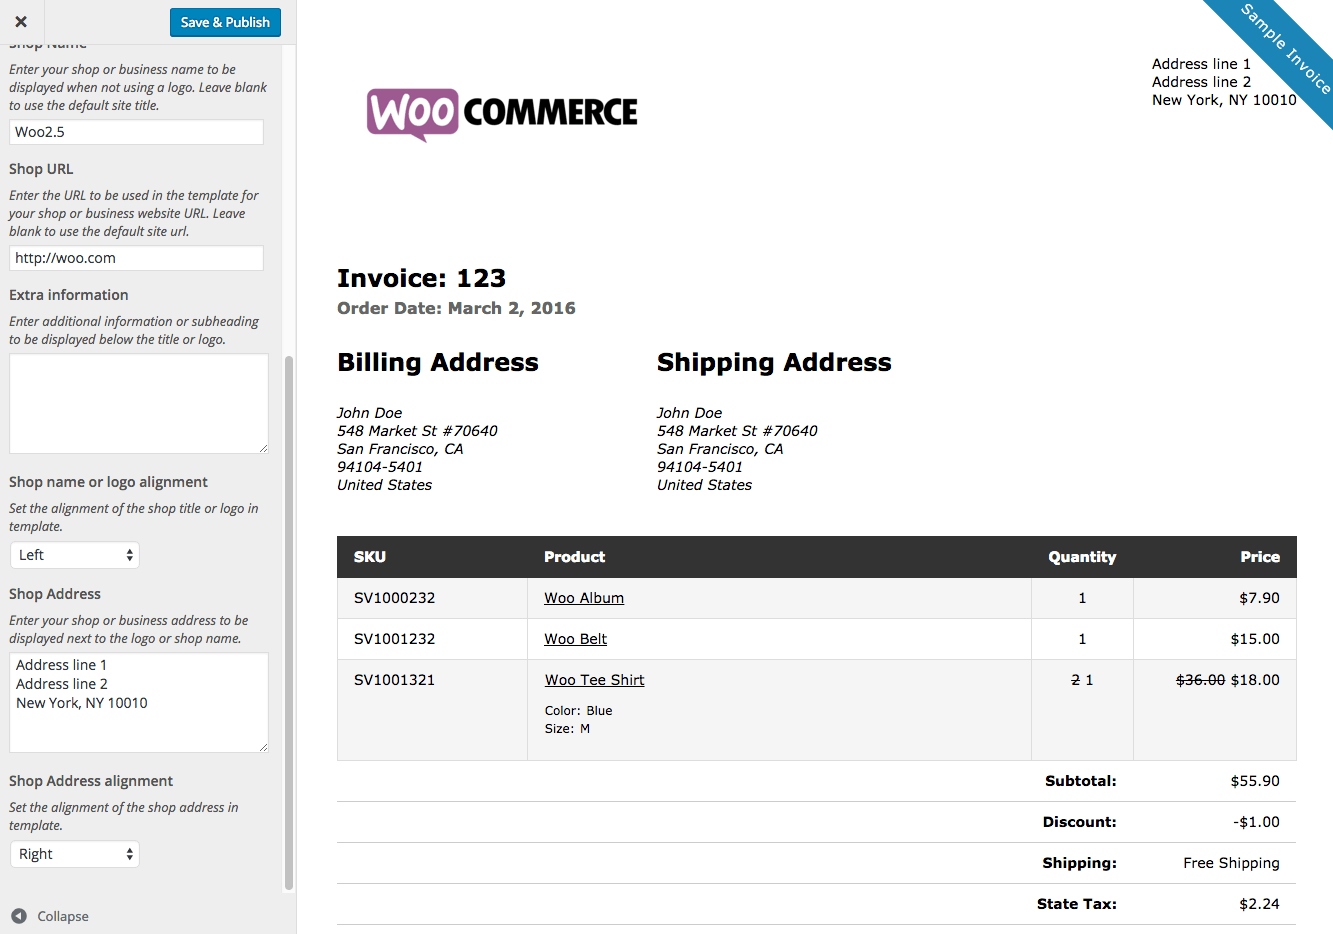 Soulfulpowerus  Ravishing Woocommerce Print Invoices Amp Packing Lists  Woocommerce Docs With Hot Woocommerce Print Invoices  Packing Lists Customizer With Appealing Gnucash Invoice Templates Also Requisitioner On Invoice In Addition Vtiger Invoice Template And Excel Invoice Form As Well As Invoice Ato Additionally Create Invoices In Excel From Docswoocommercecom With Soulfulpowerus  Hot Woocommerce Print Invoices Amp Packing Lists  Woocommerce Docs With Appealing Woocommerce Print Invoices  Packing Lists Customizer And Ravishing Gnucash Invoice Templates Also Requisitioner On Invoice In Addition Vtiger Invoice Template From Docswoocommercecom